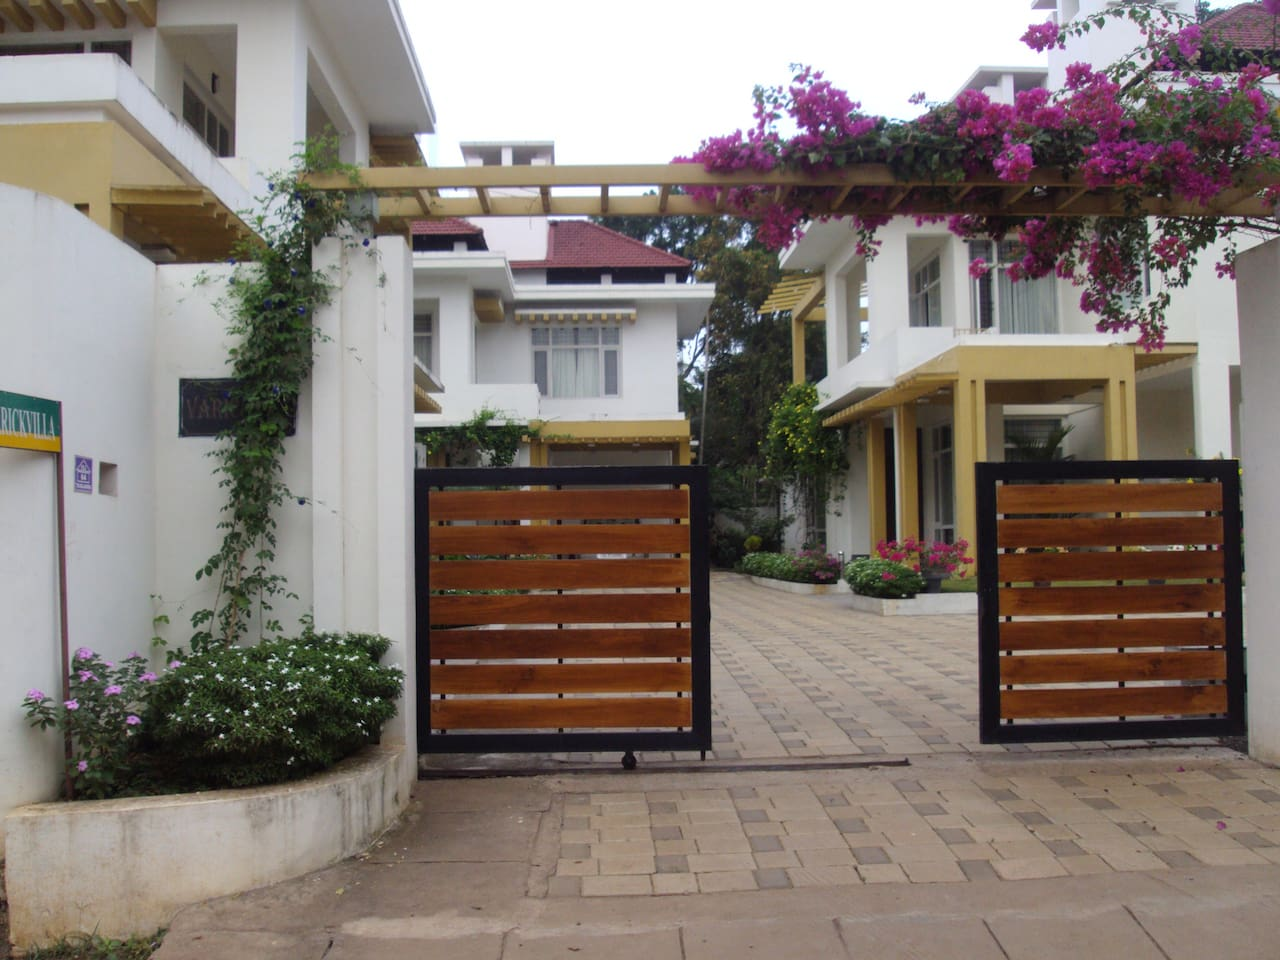 Entrance of the homestay